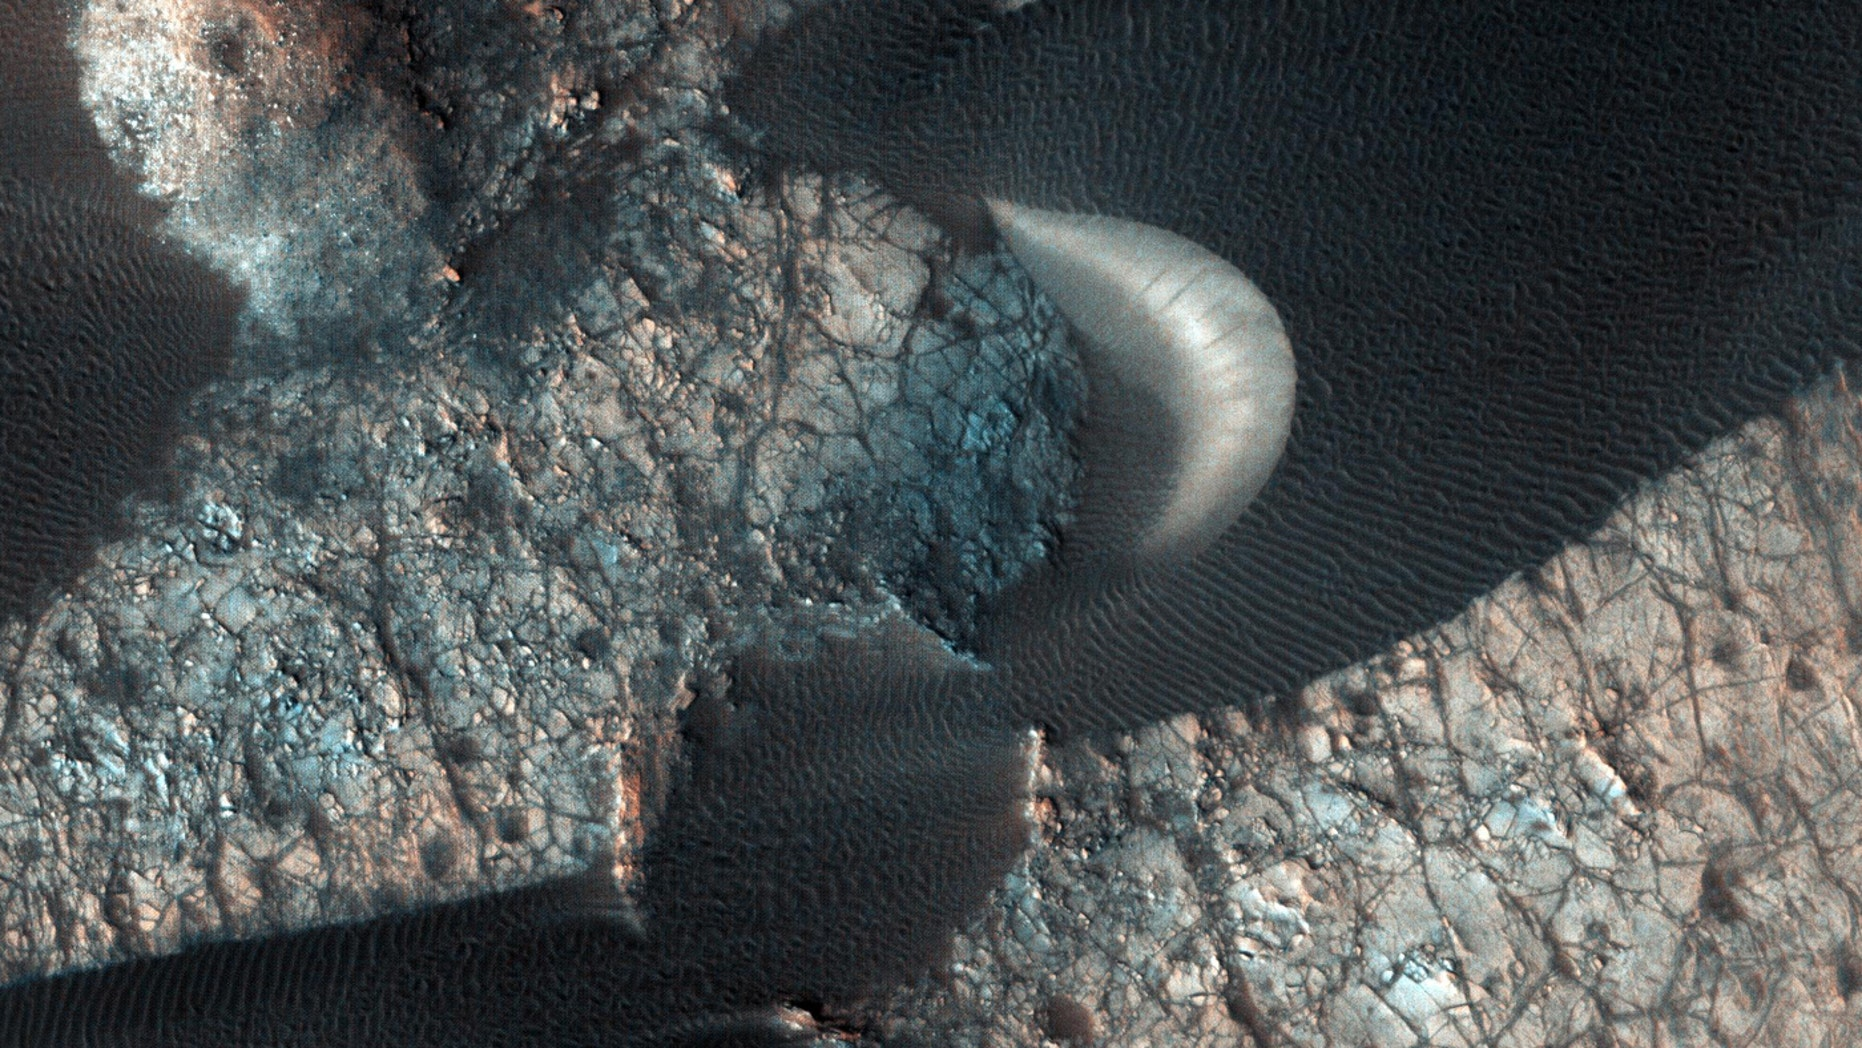 Sand dunes are seen on Mars in this image released by NASA.